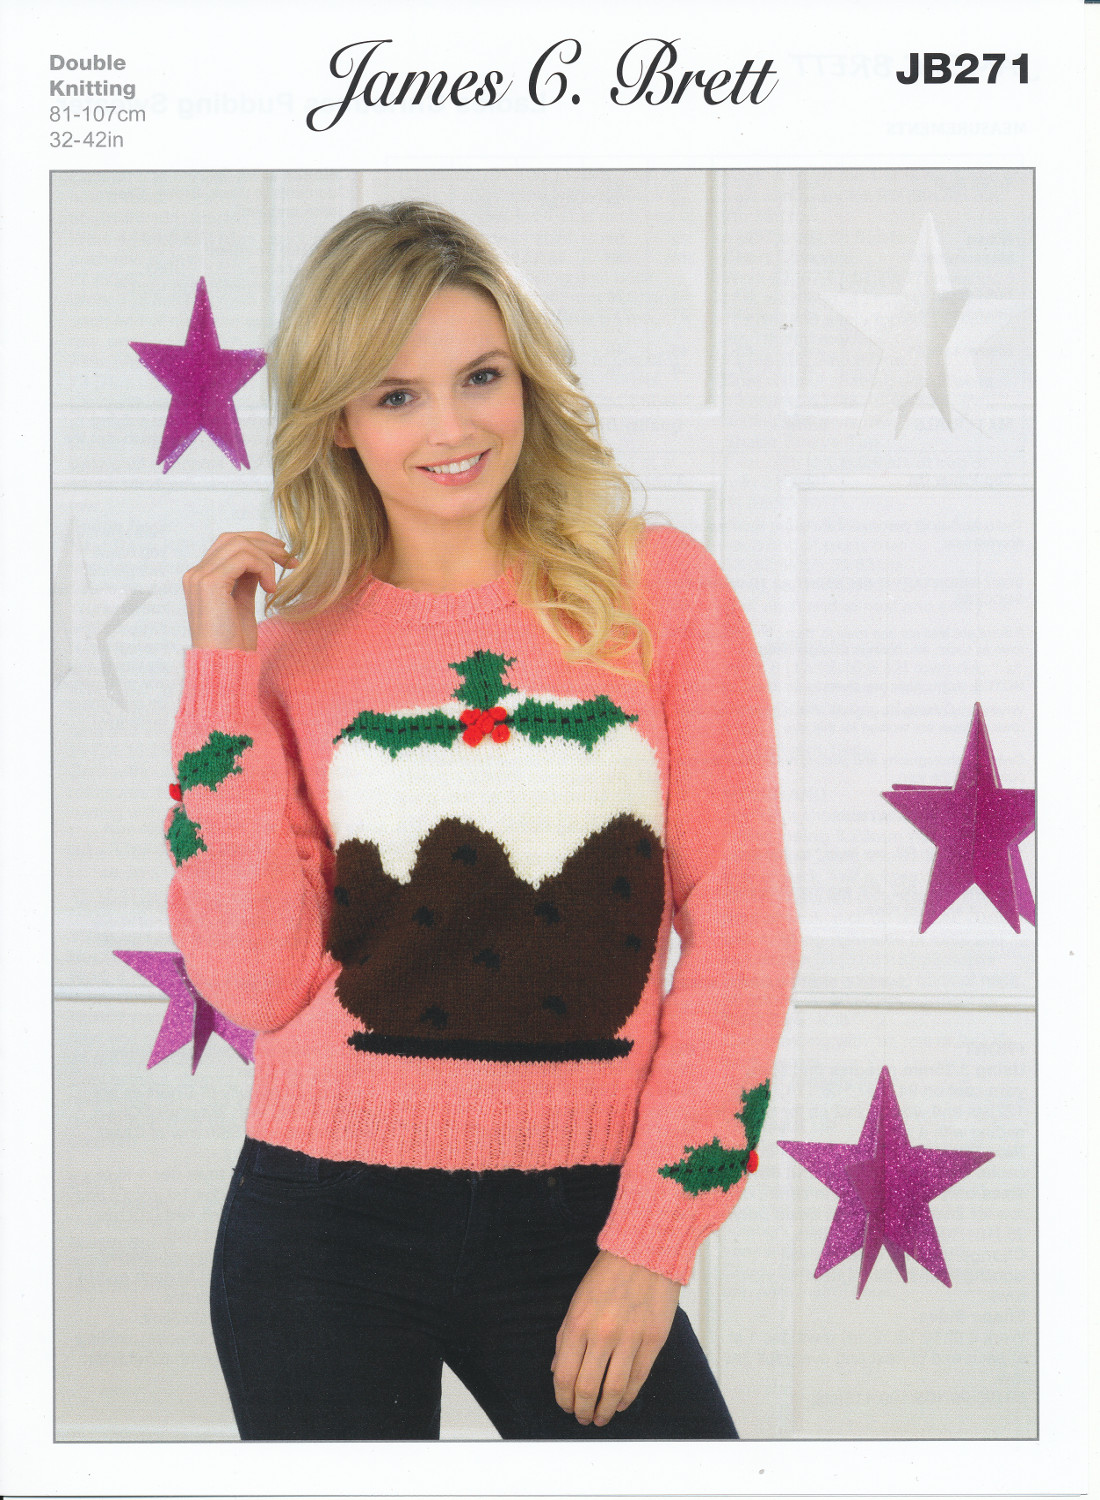 Ladies top value dk knitting pattern christmas pudding jumper please look at images below for the chart showing measurements yarn and materials requirement to make this garment bankloansurffo Image collections